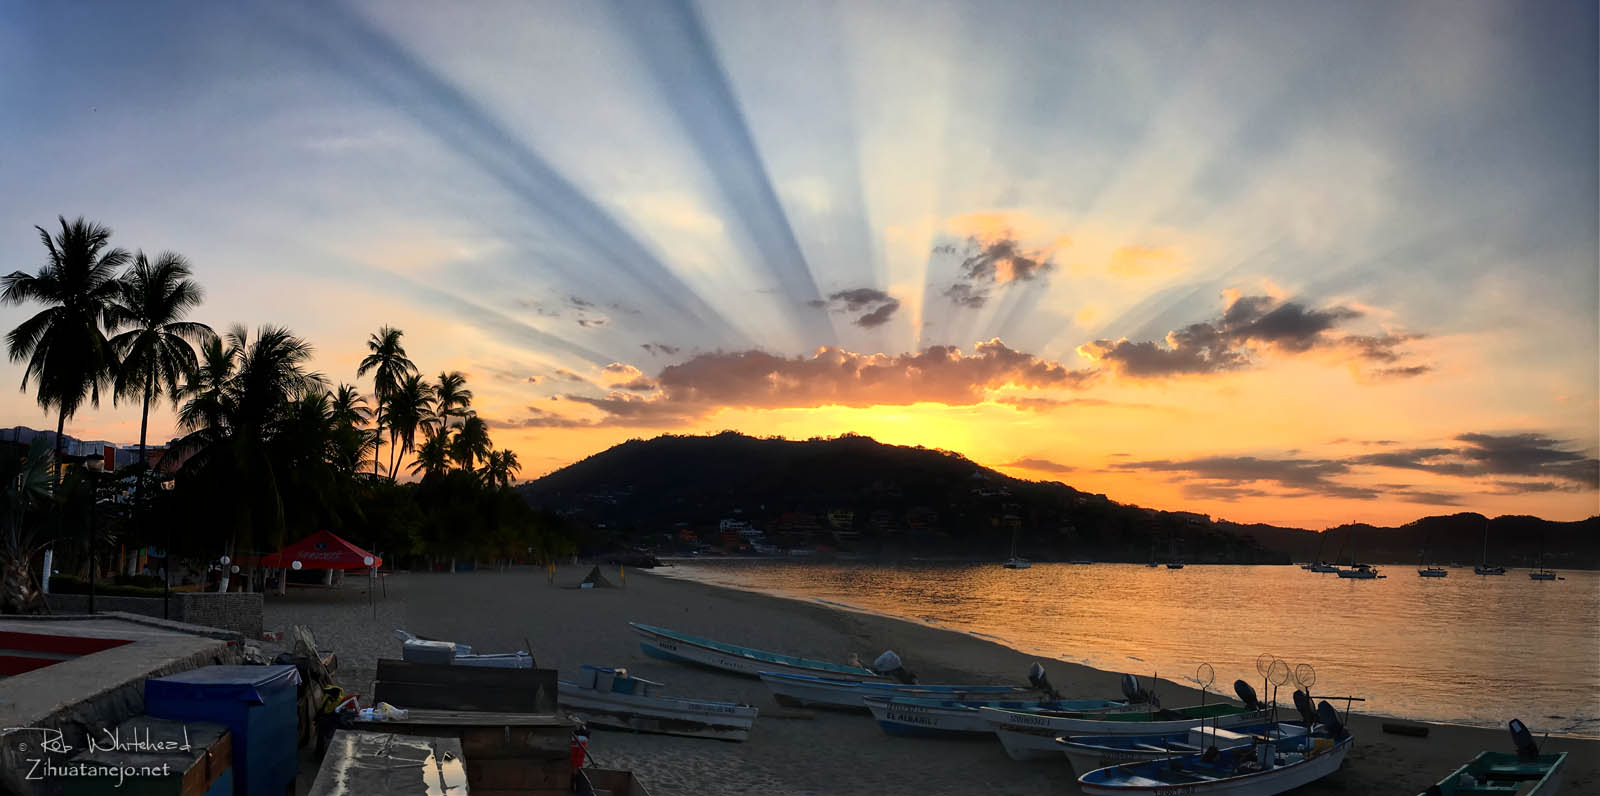 Sunrise in Zihuatanejo Bay